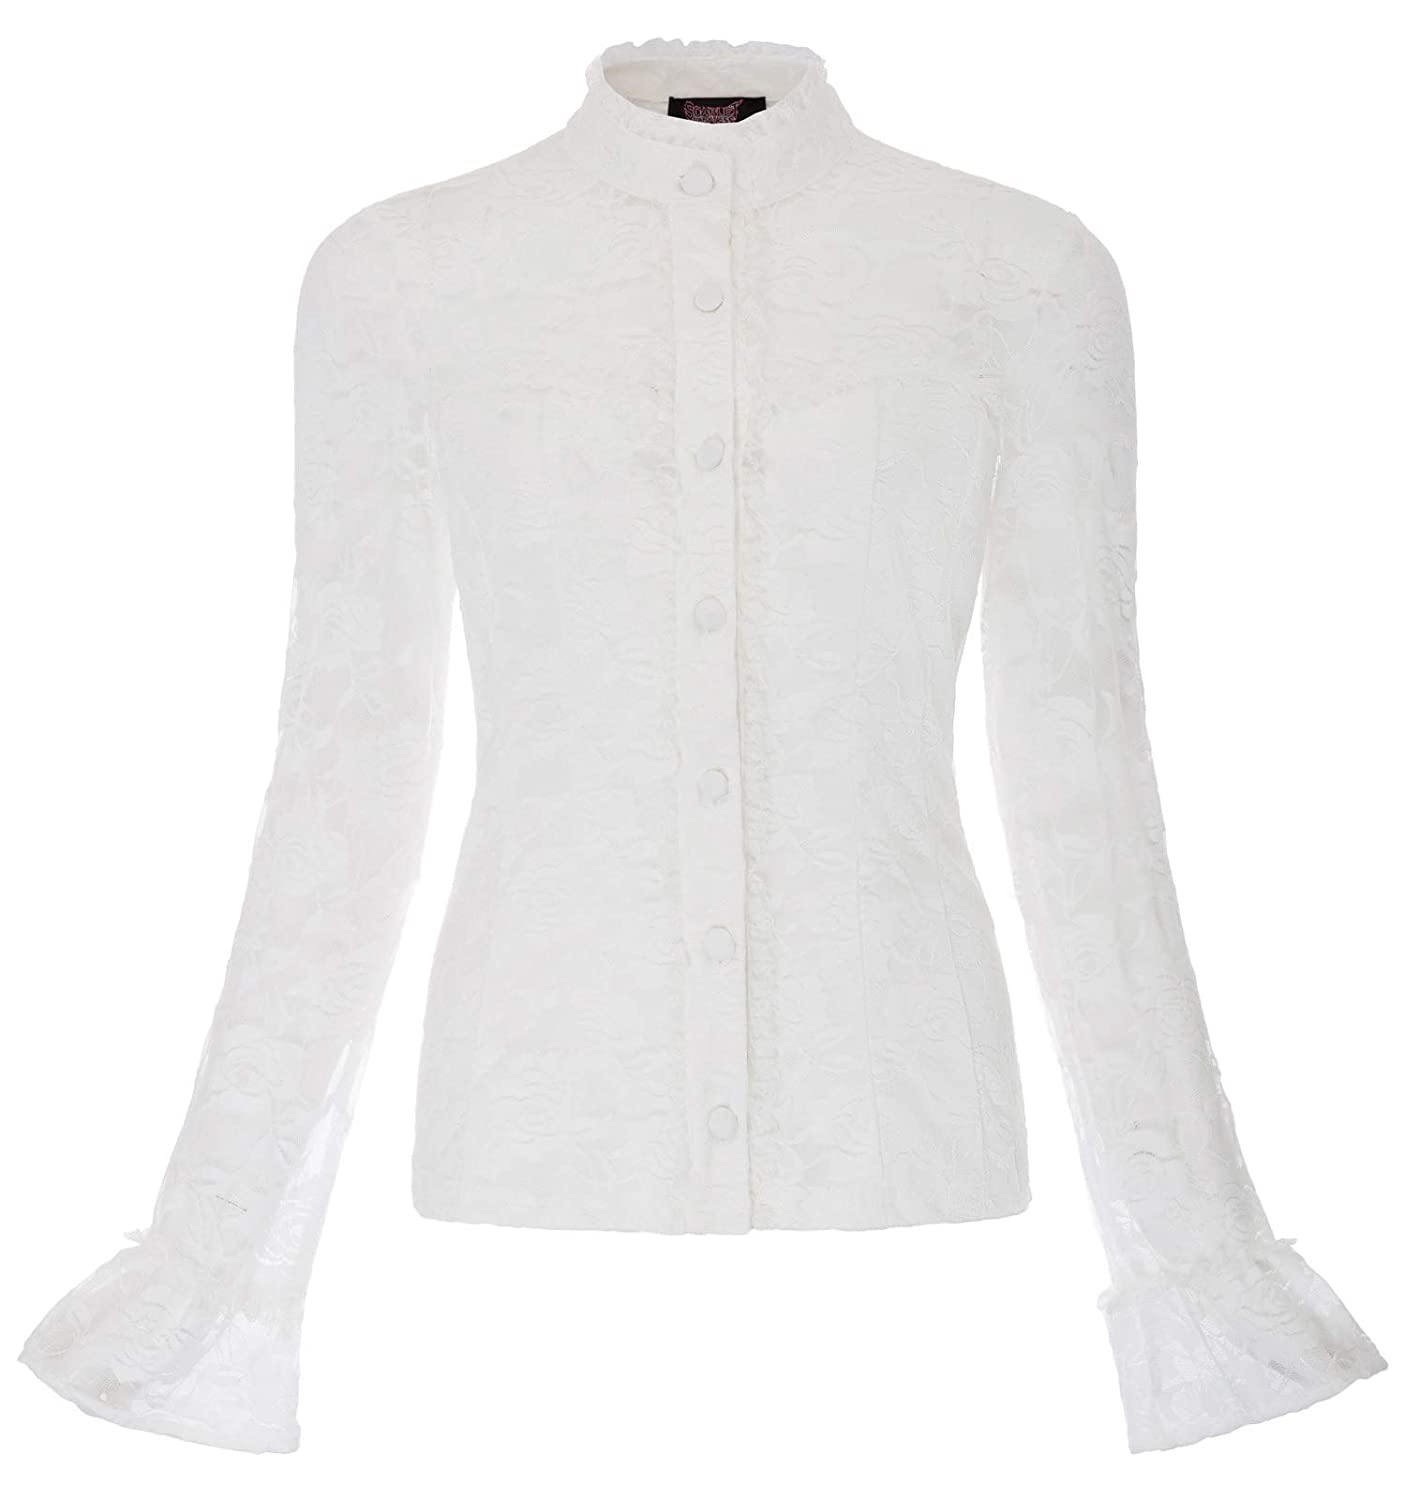 Victorian Blouses, Tops, Shirts, Sweaters Women Vintage Gothic Long Sleeve Stand Collar Patchwork Lace Tops $9.99 AT vintagedancer.com